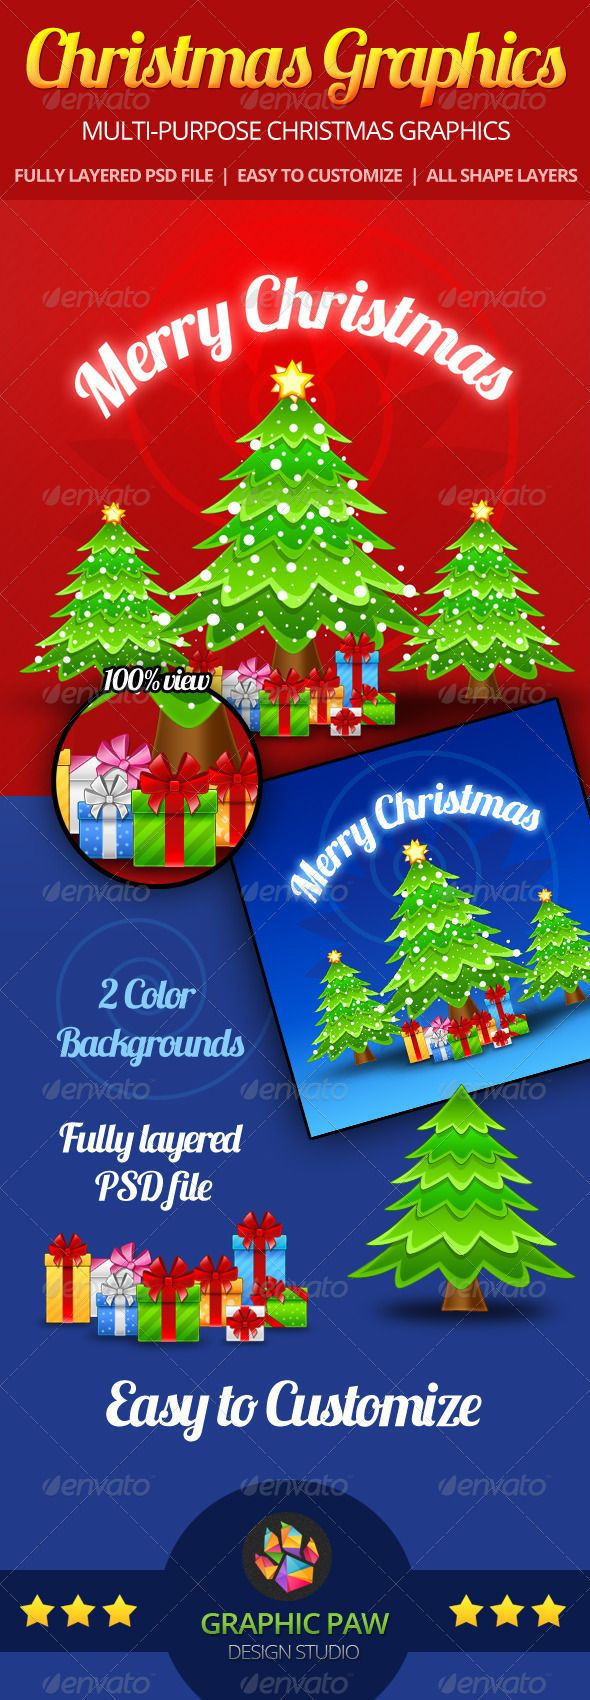 Christmas Gfx Pack Great For Greeting Cards Newsletters Websites